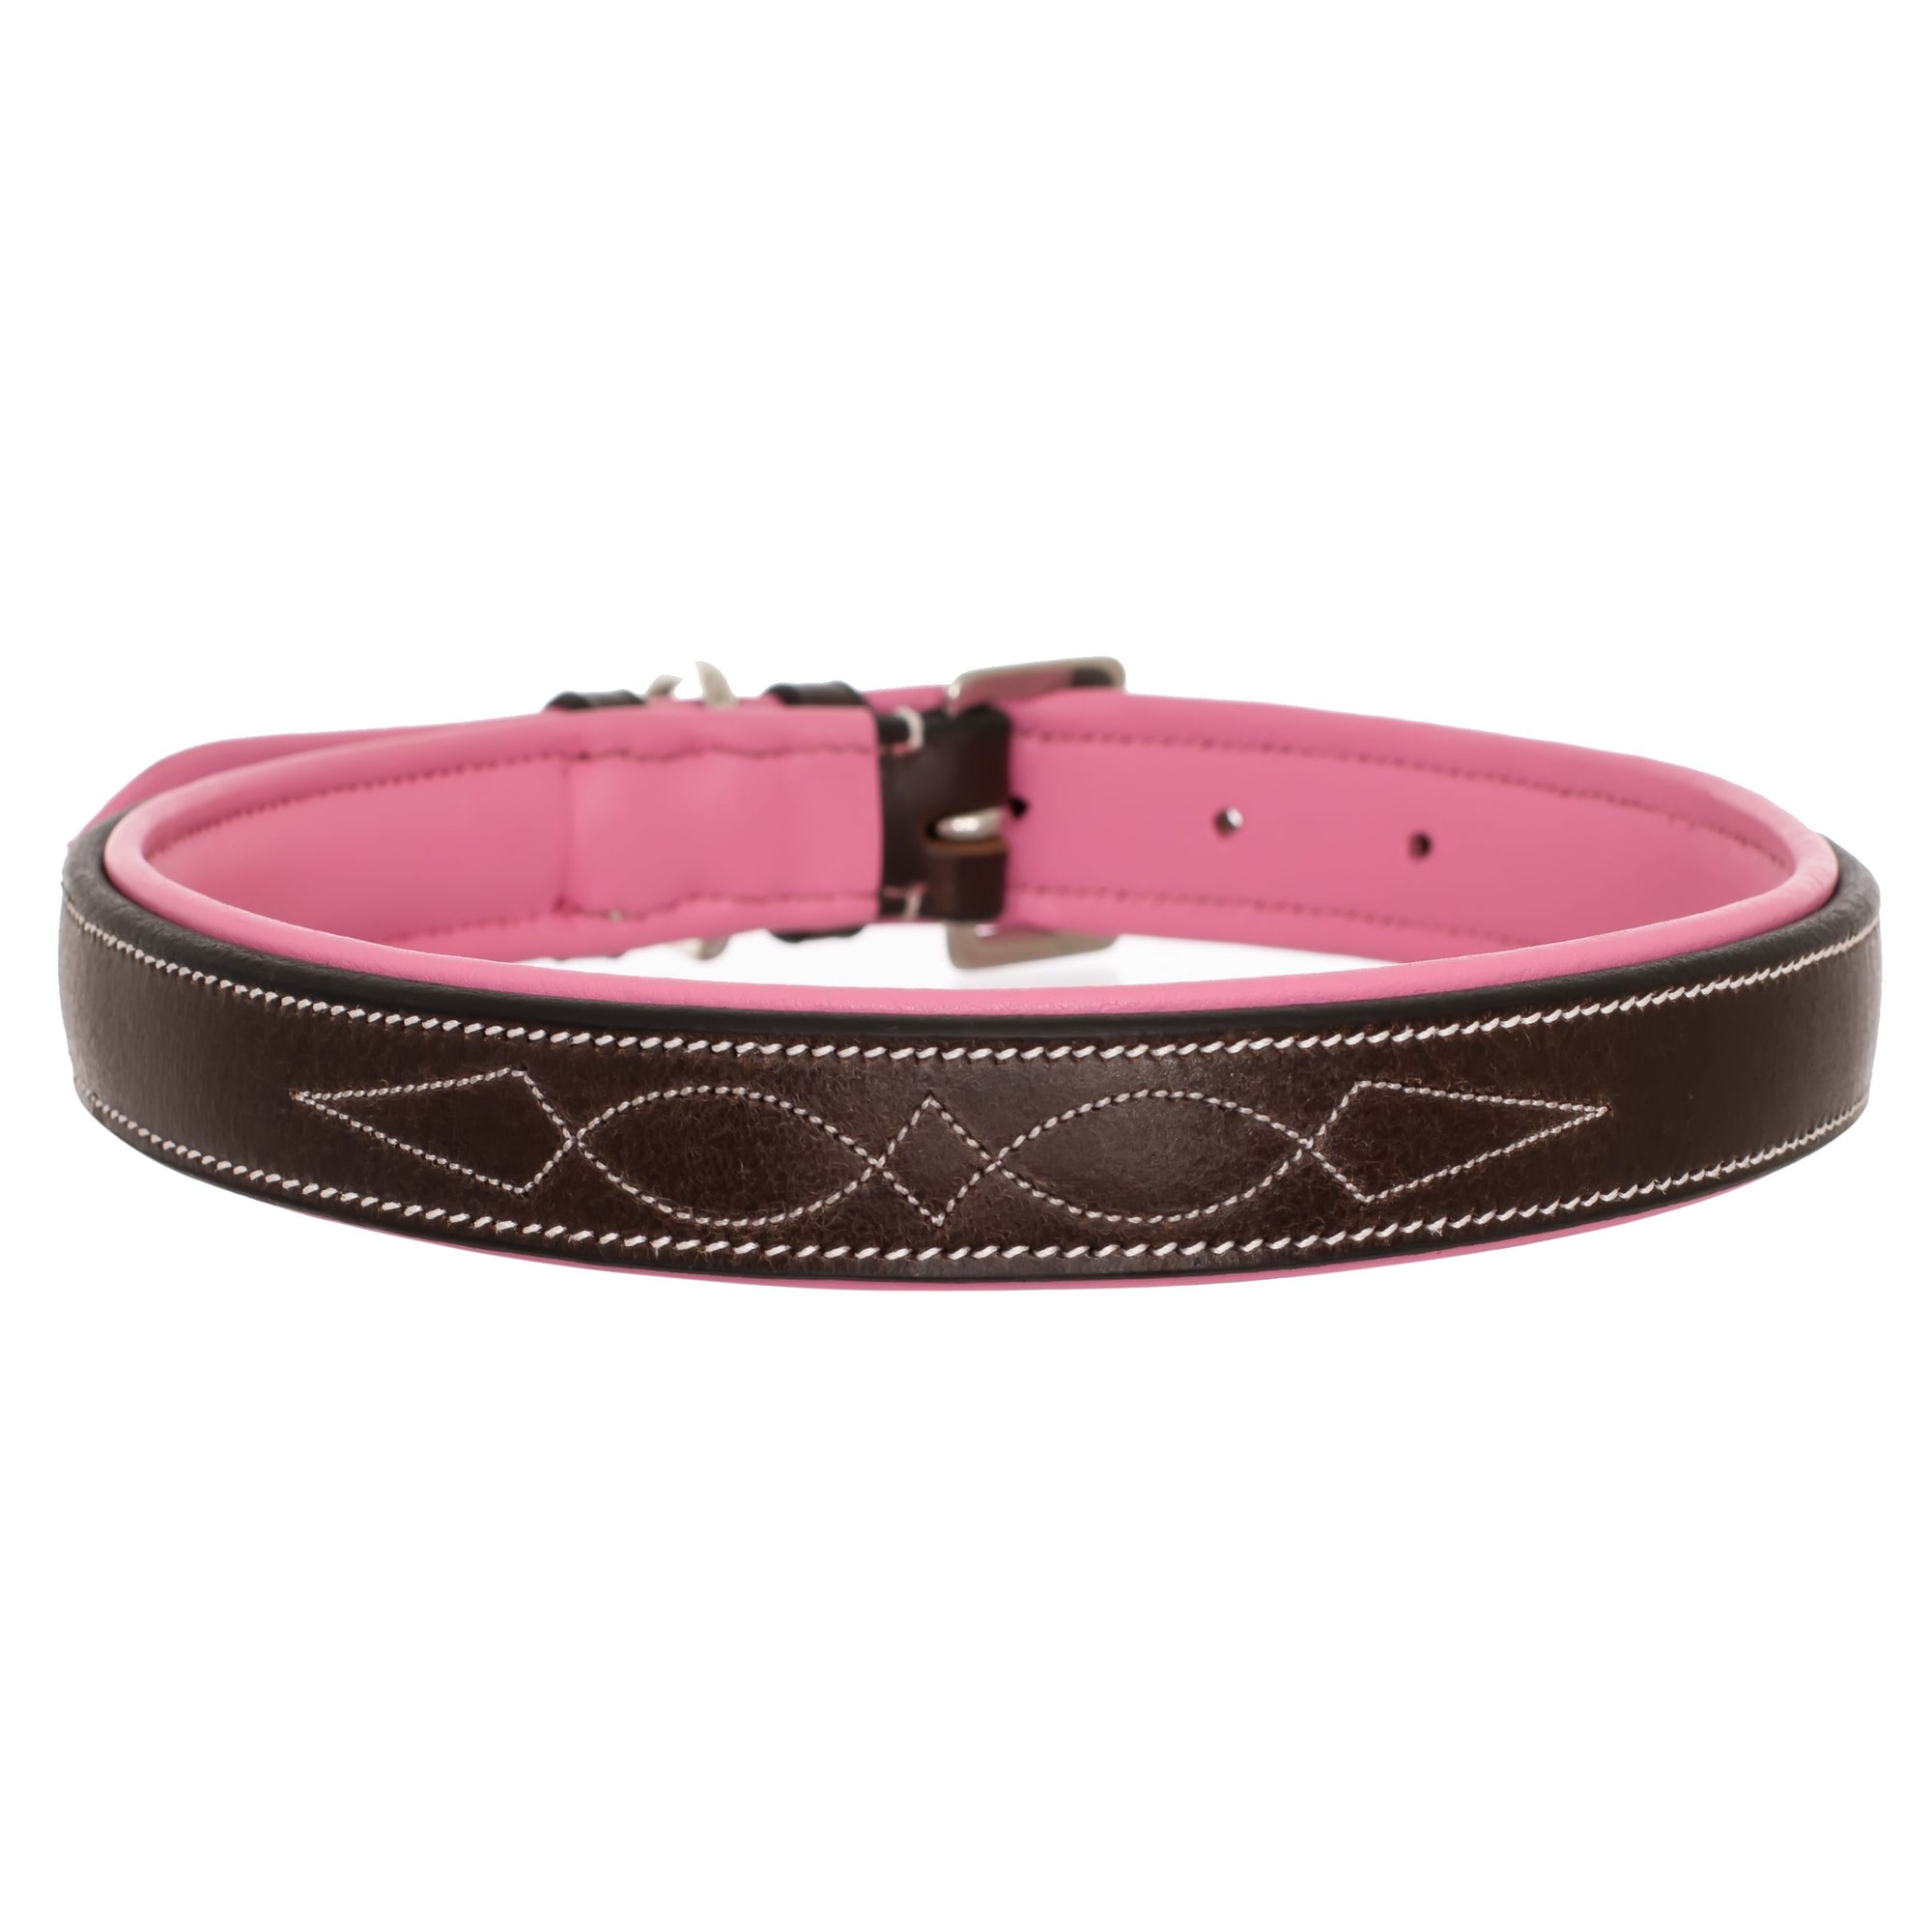 ExionPro Fancy Stitched Padded Leather Dog Collar - Pink Padding-Bridles & Reins